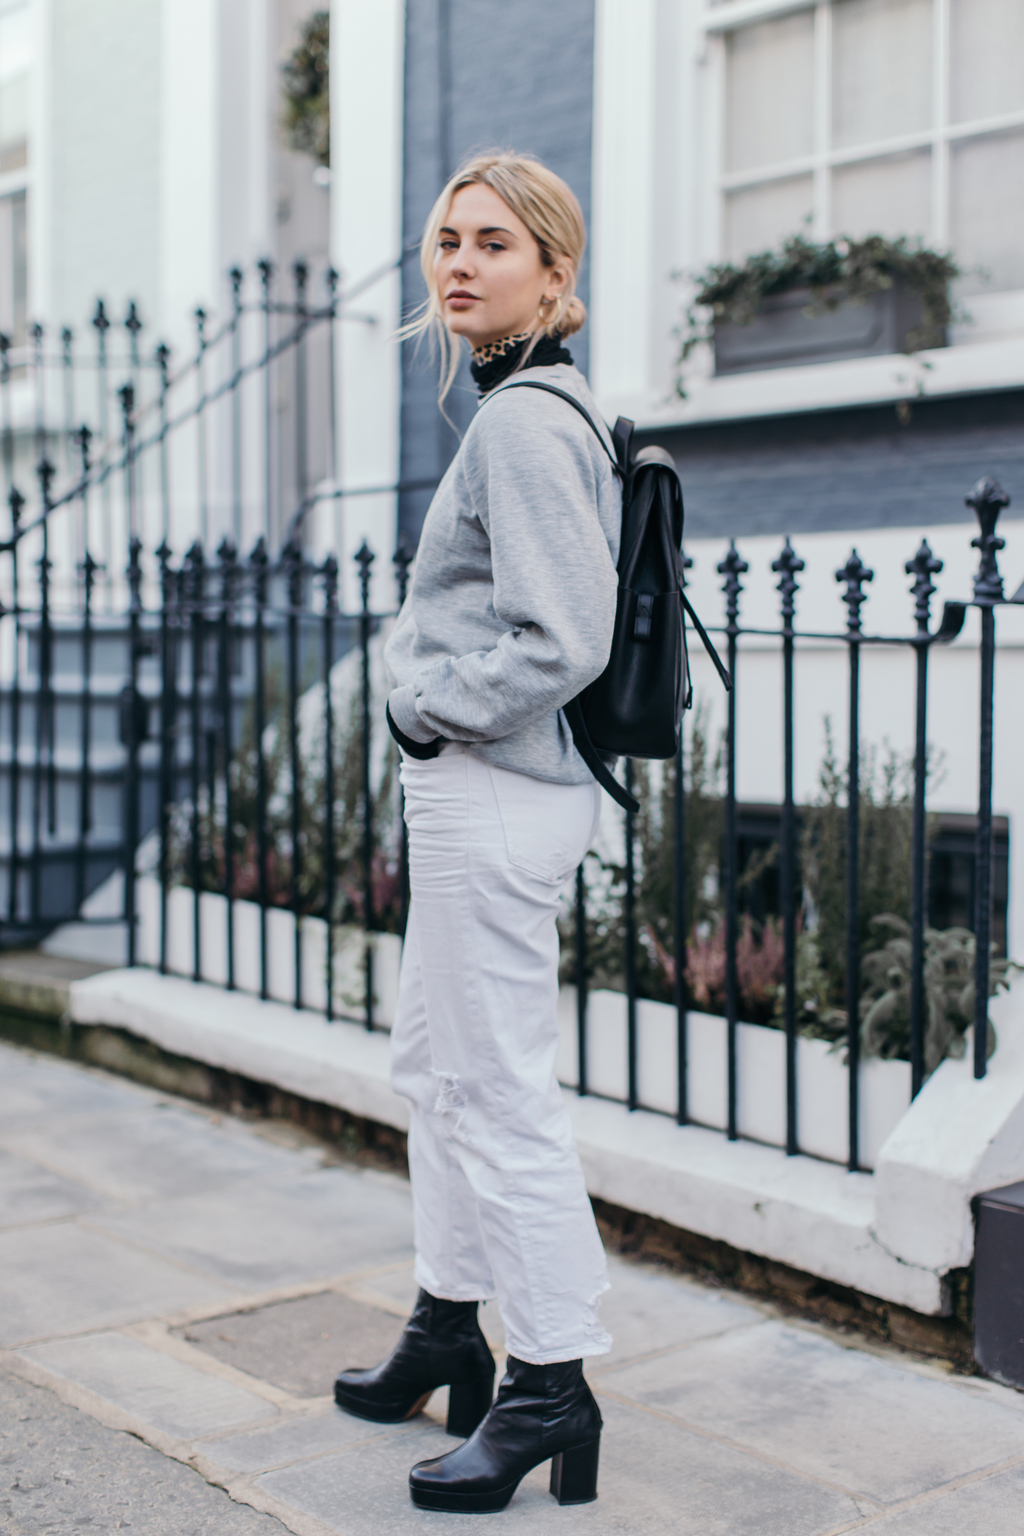 90's REMINISCING + NORMCORE IN NOTTING HILL